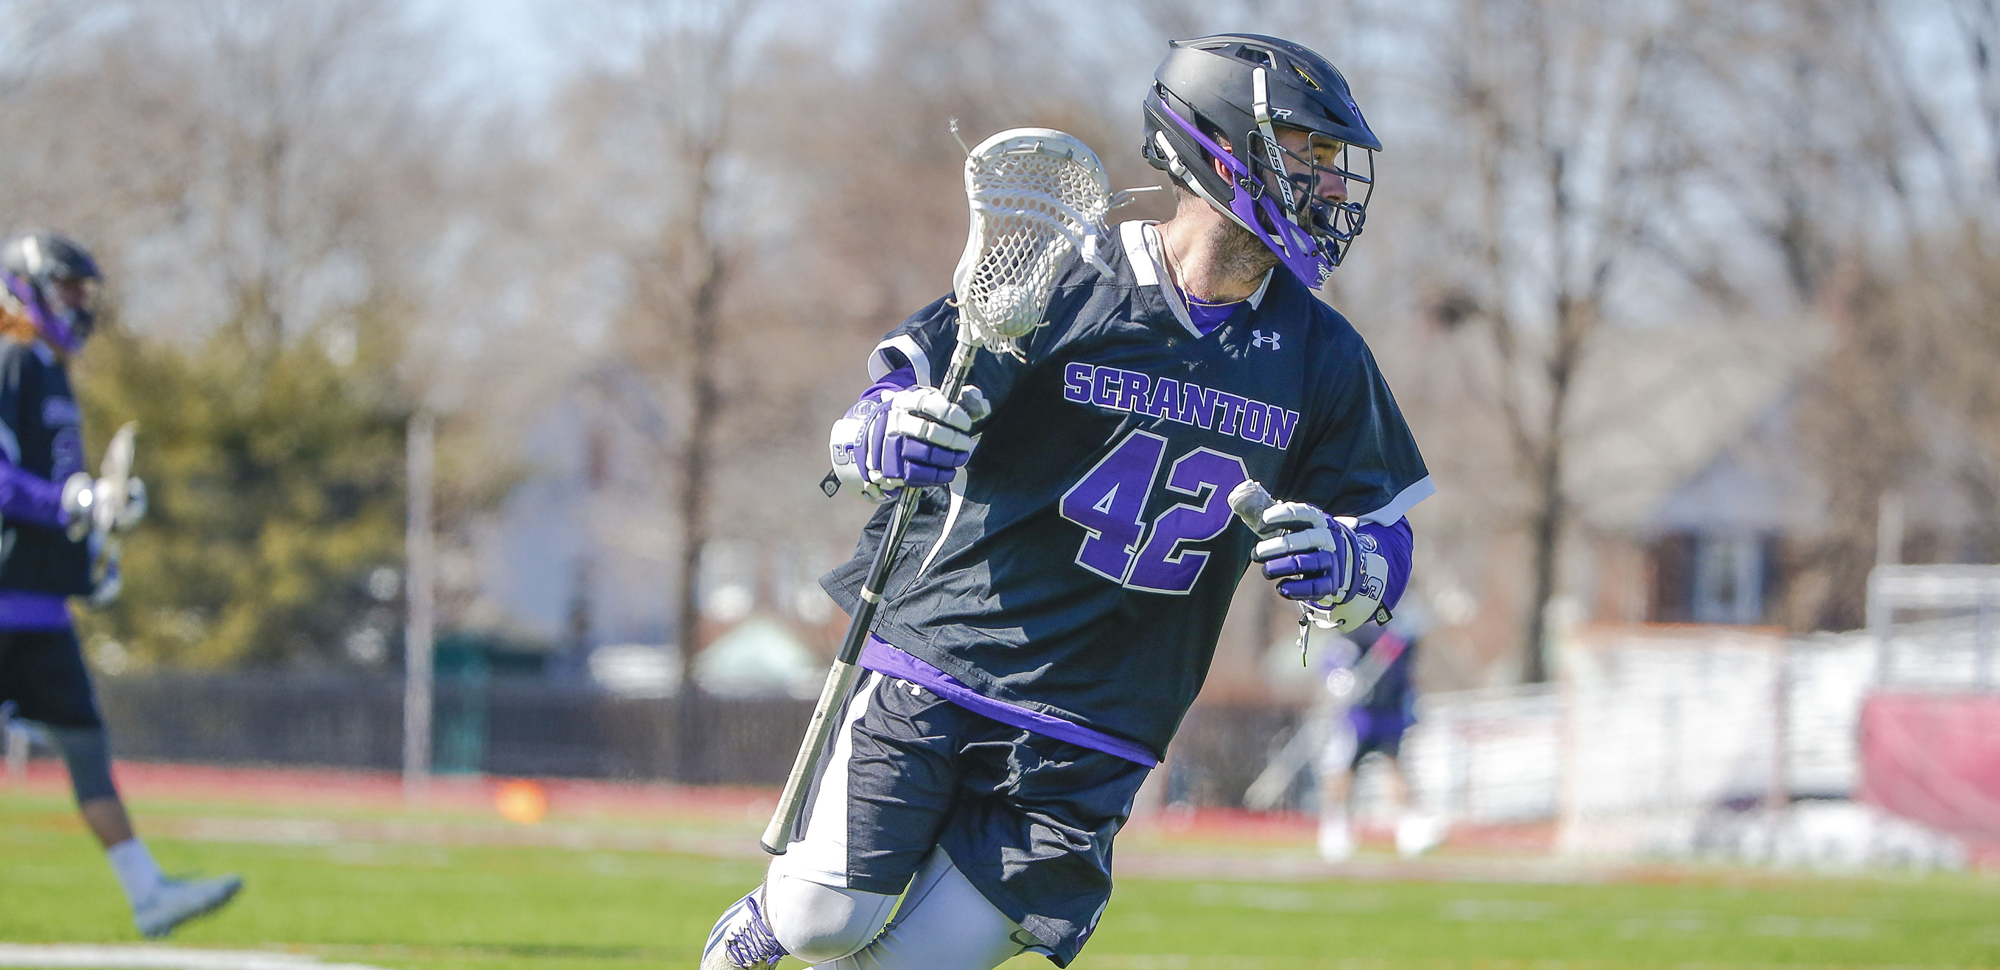 Men's Lacrosse At RIT Moved To Sunday At Noon